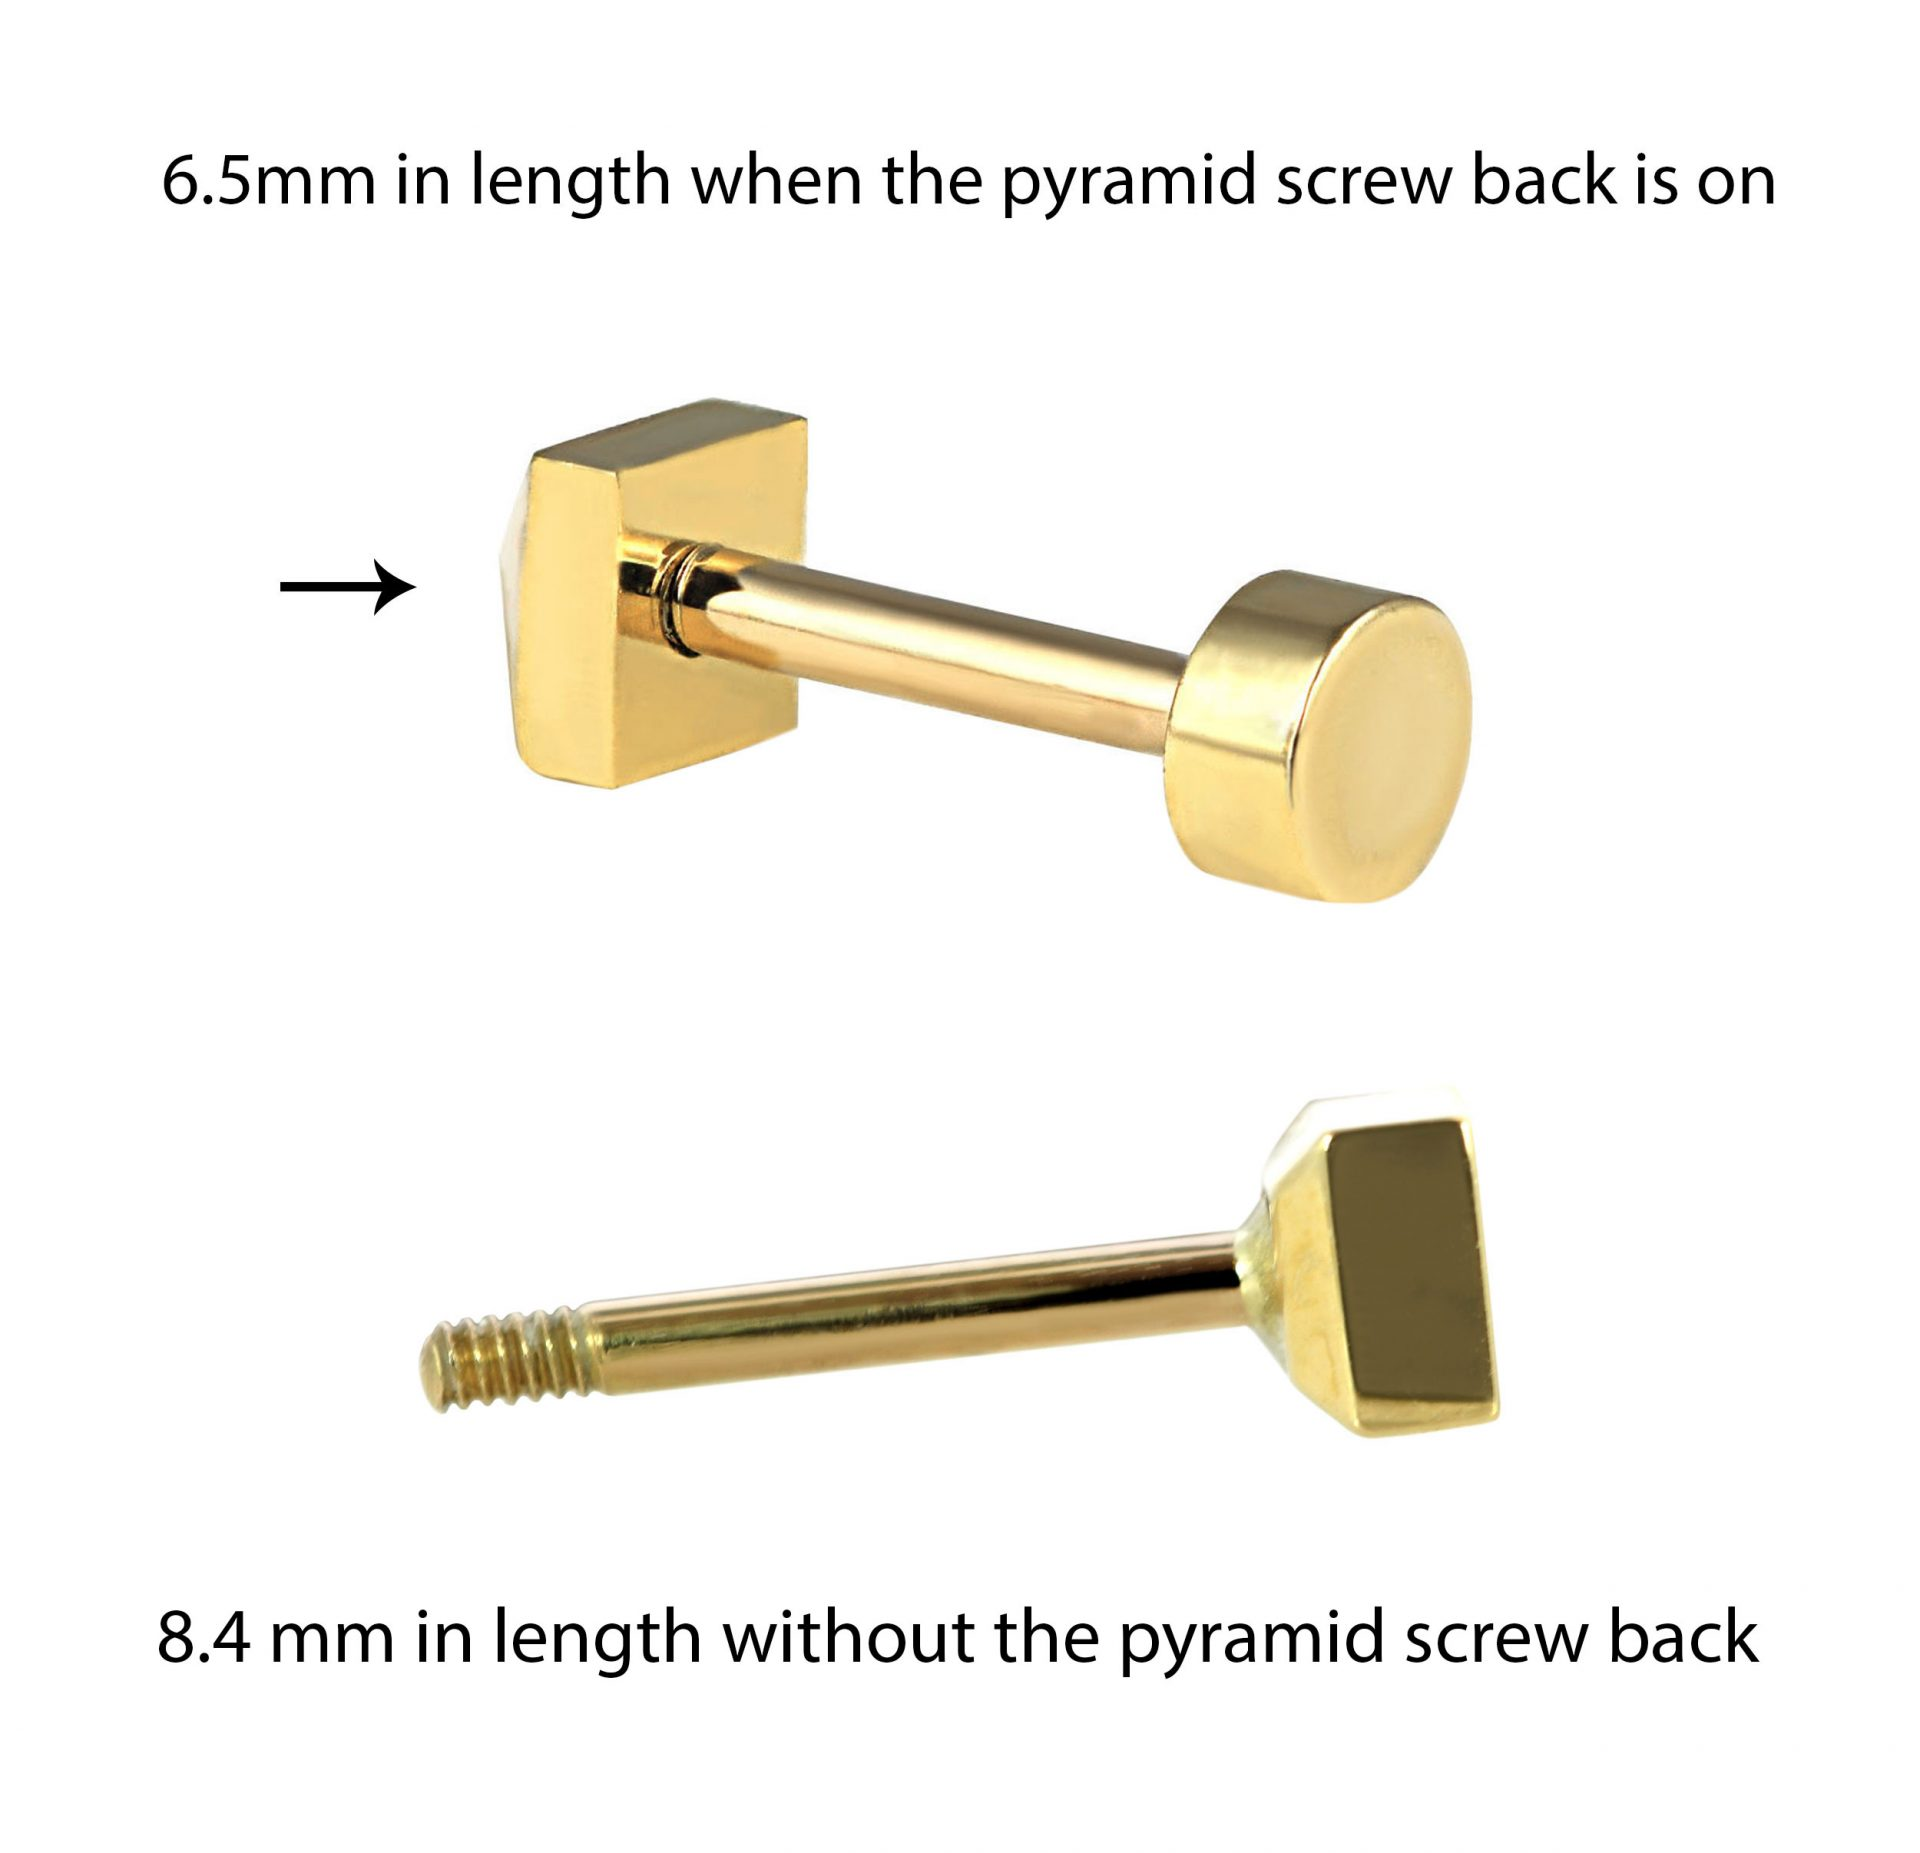 Customise your piercing barbell length